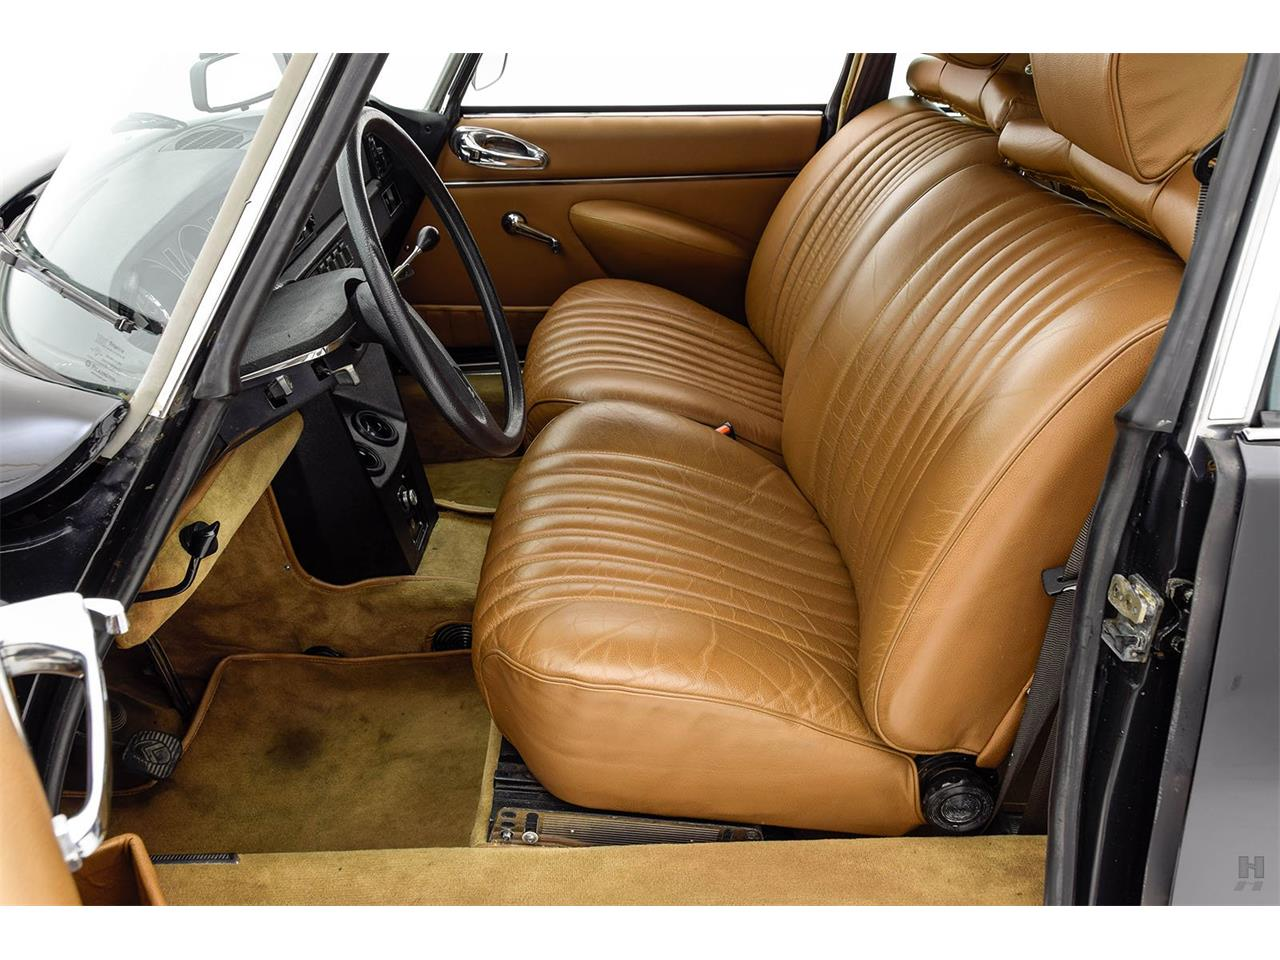 Large Picture of '72 Citroen DS21 Pallas - $59,500.00 Offered by Hyman Ltd. Classic Cars - P3WY